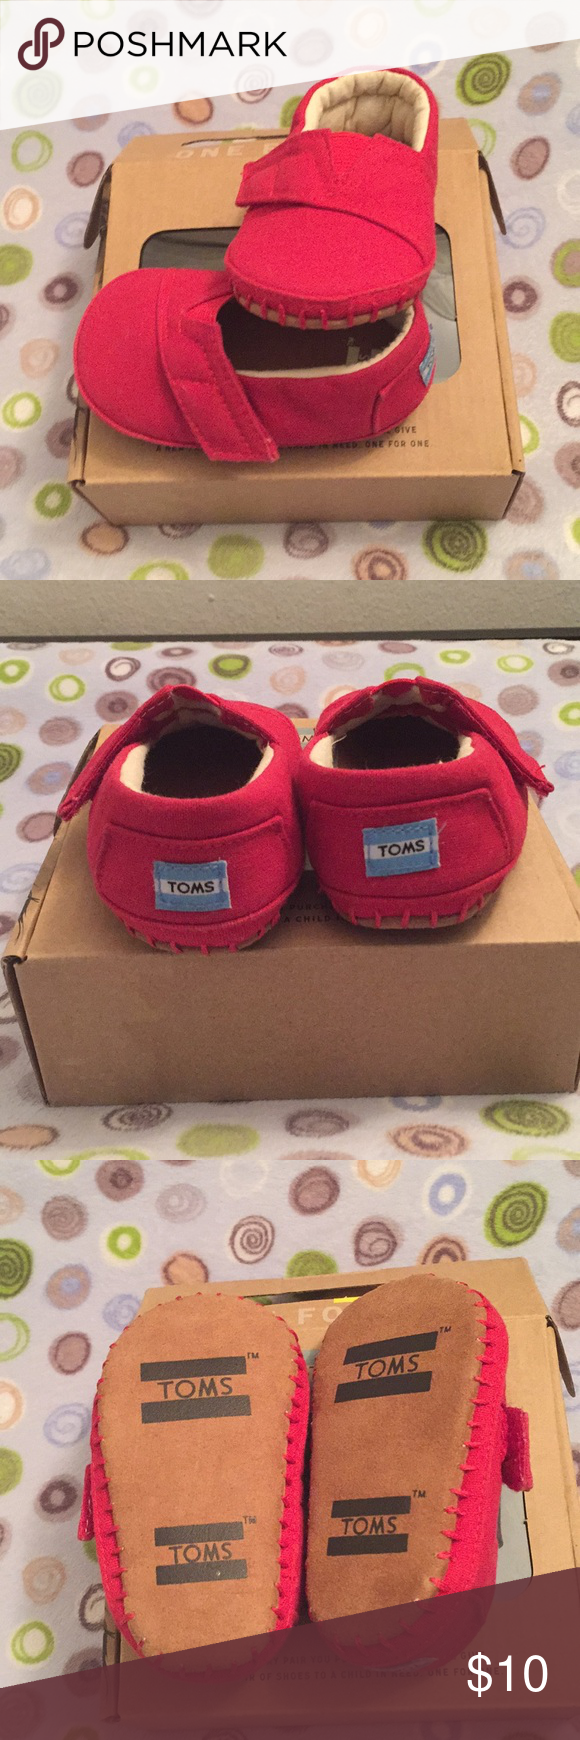 Toms Baby Shoes My Posh Closet Pinterest Shoes Baby Shoes And